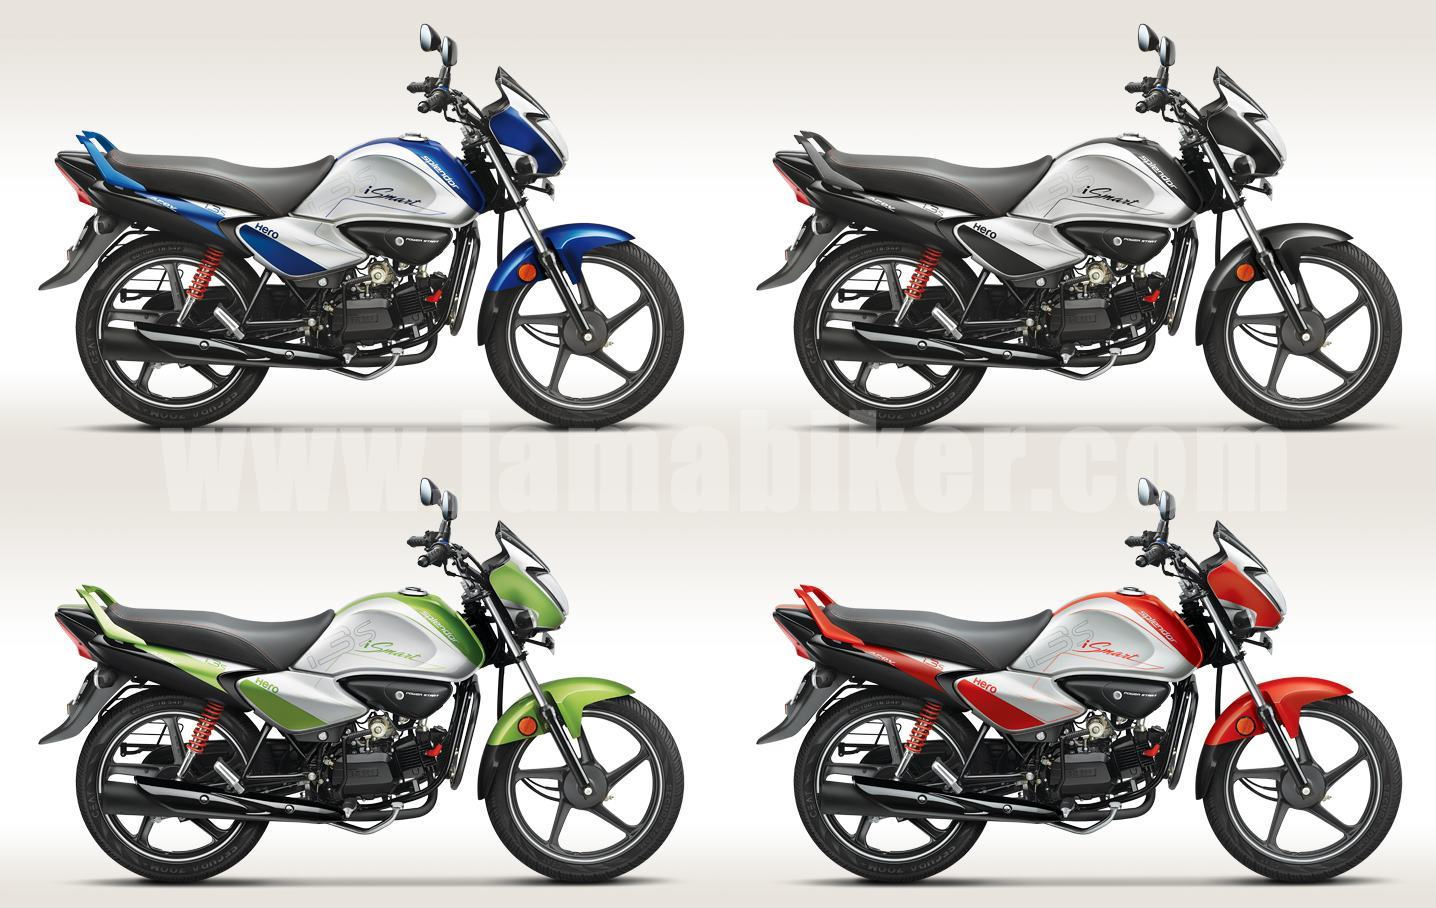 hero splendor ismart all colour options